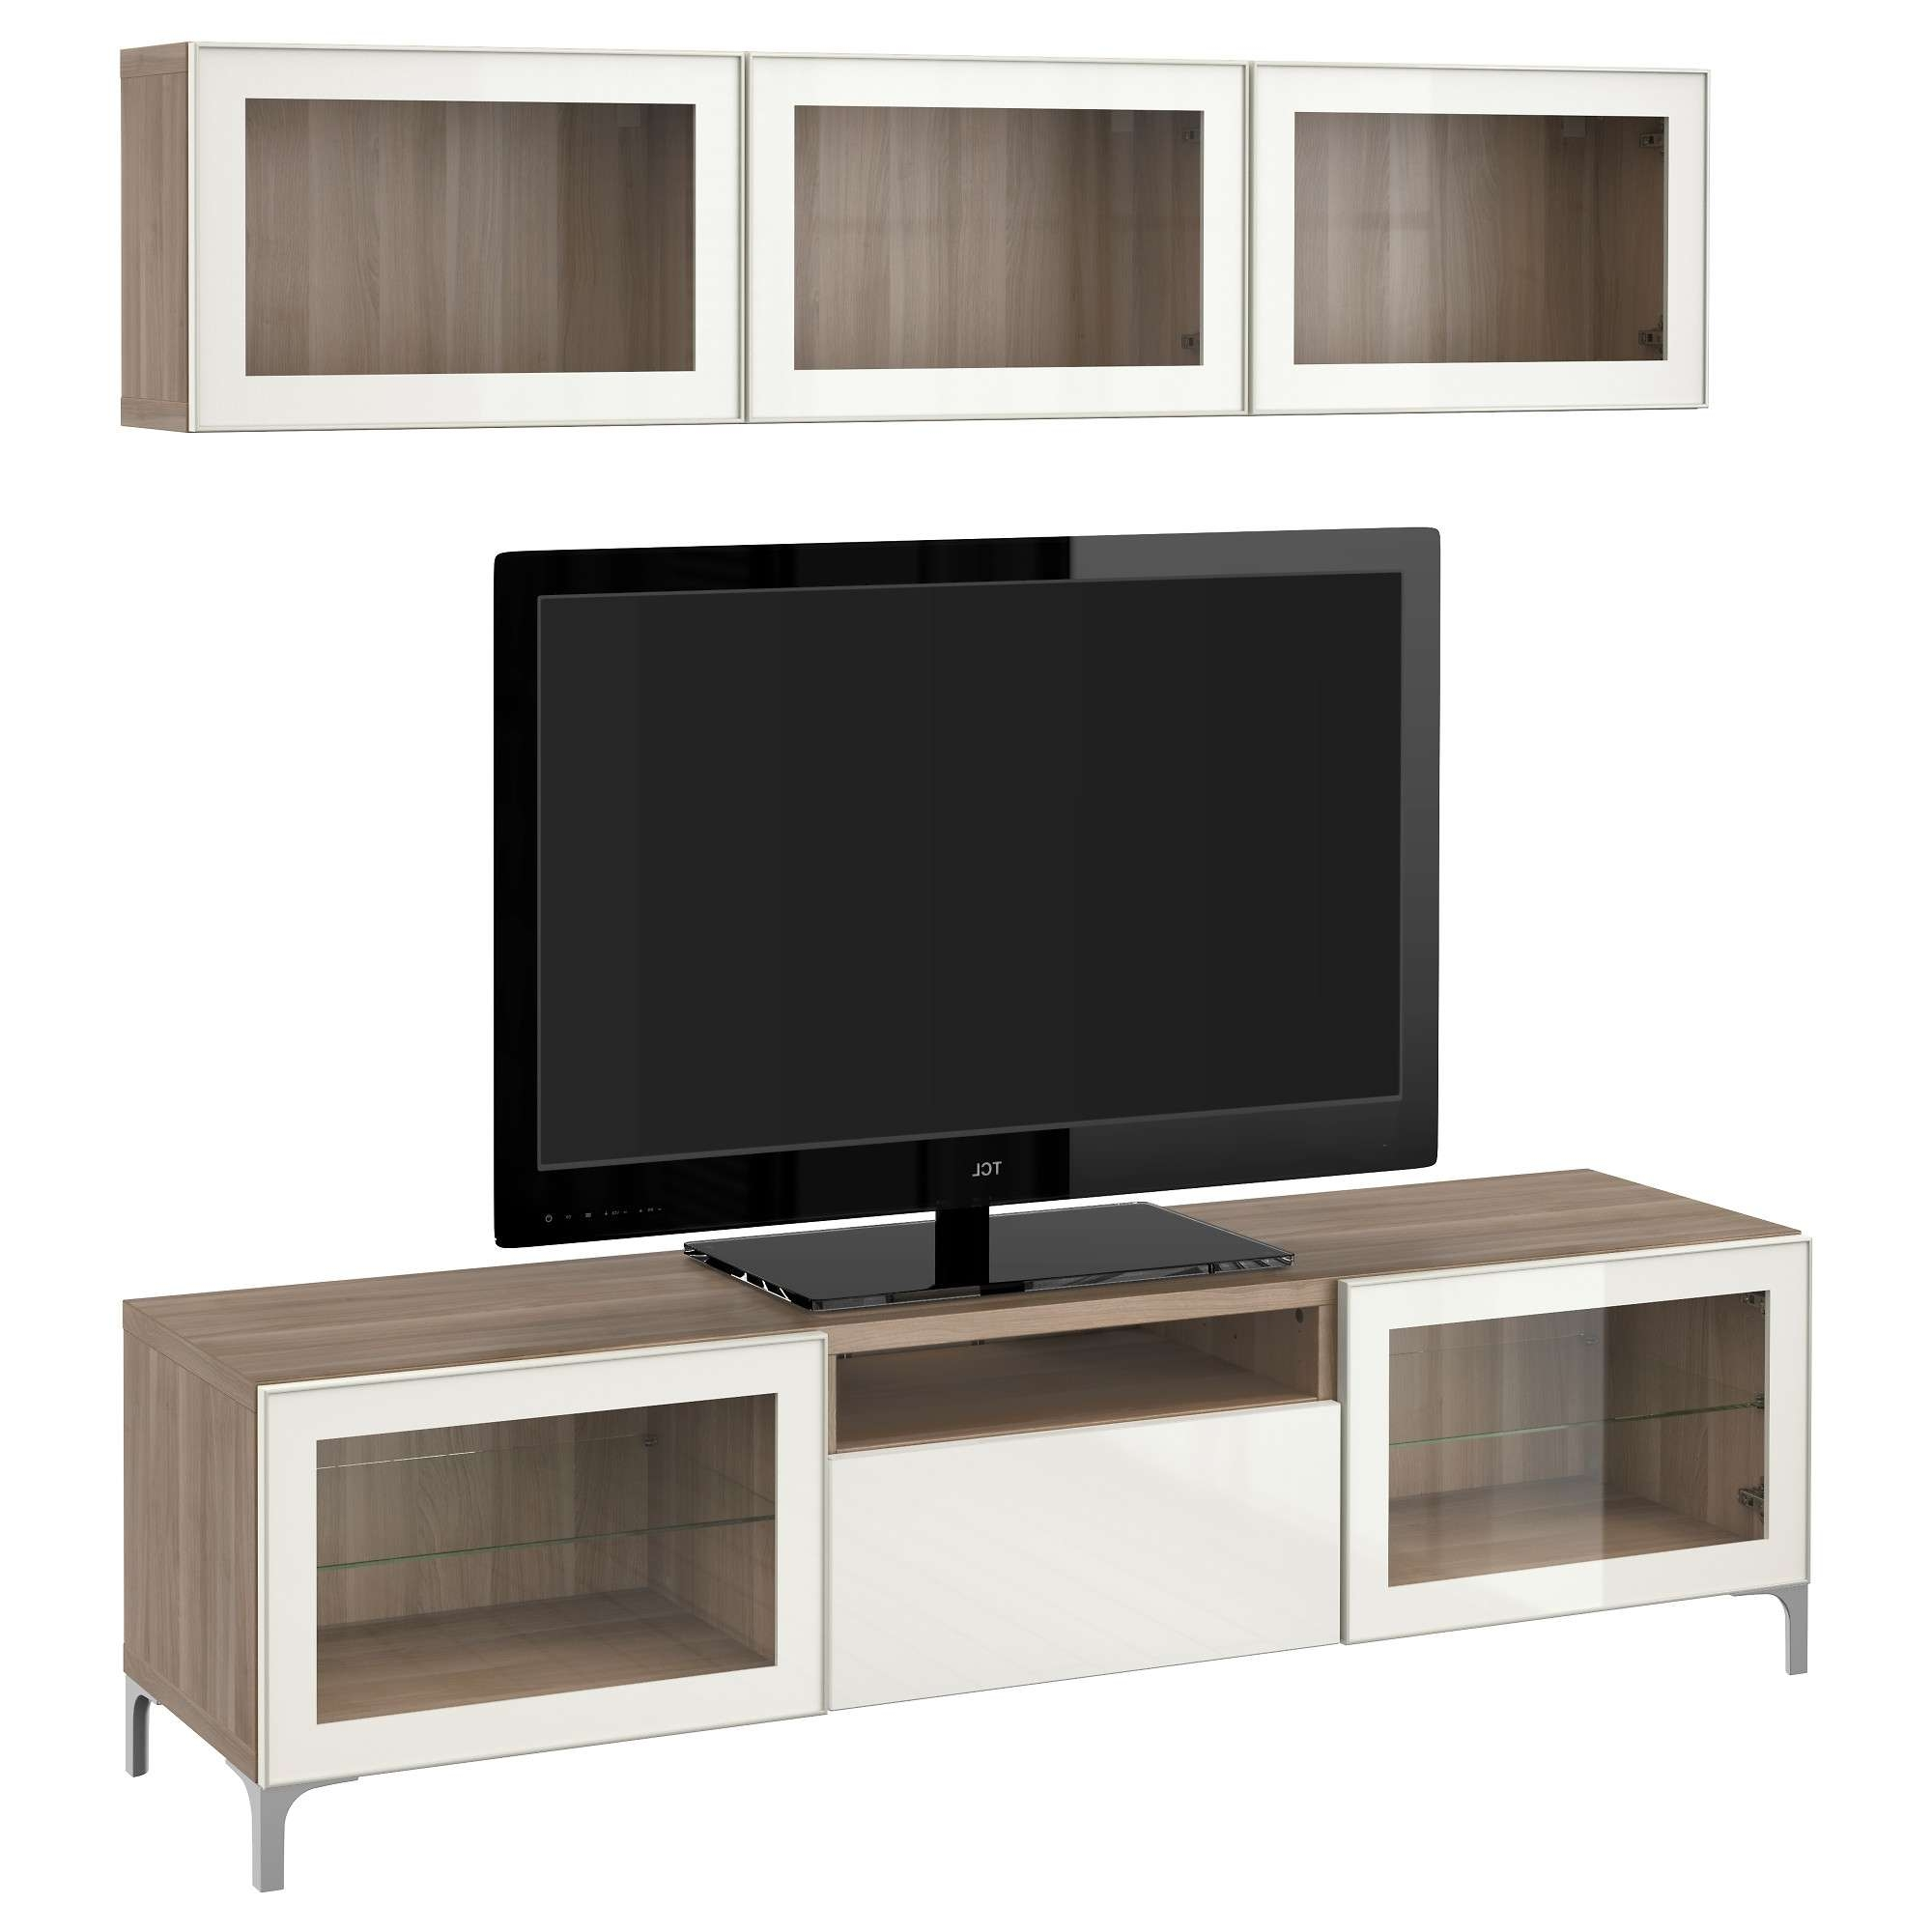 Black Tv Cabinet With Glass Doors Image Collections U2013 Doors Design With Glass  Tv Cabinets With